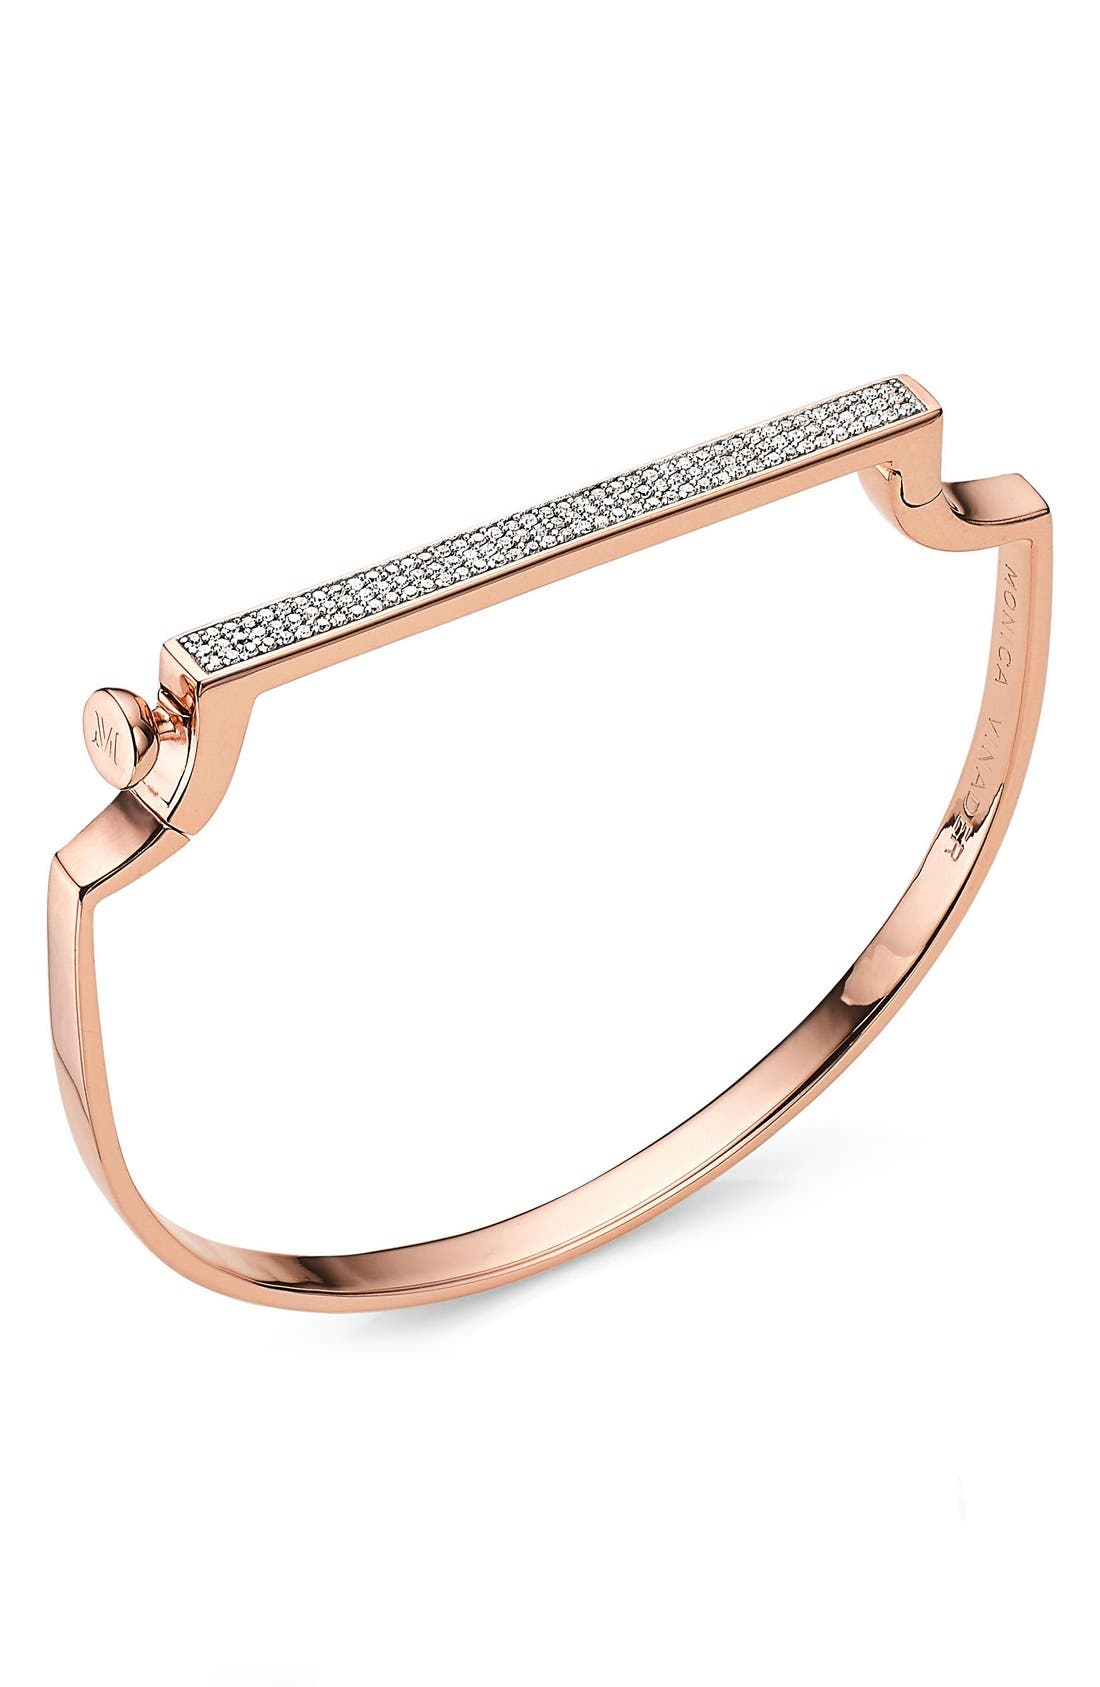 Main Image - Monica Vinader Signature Thin Diamond Bangle